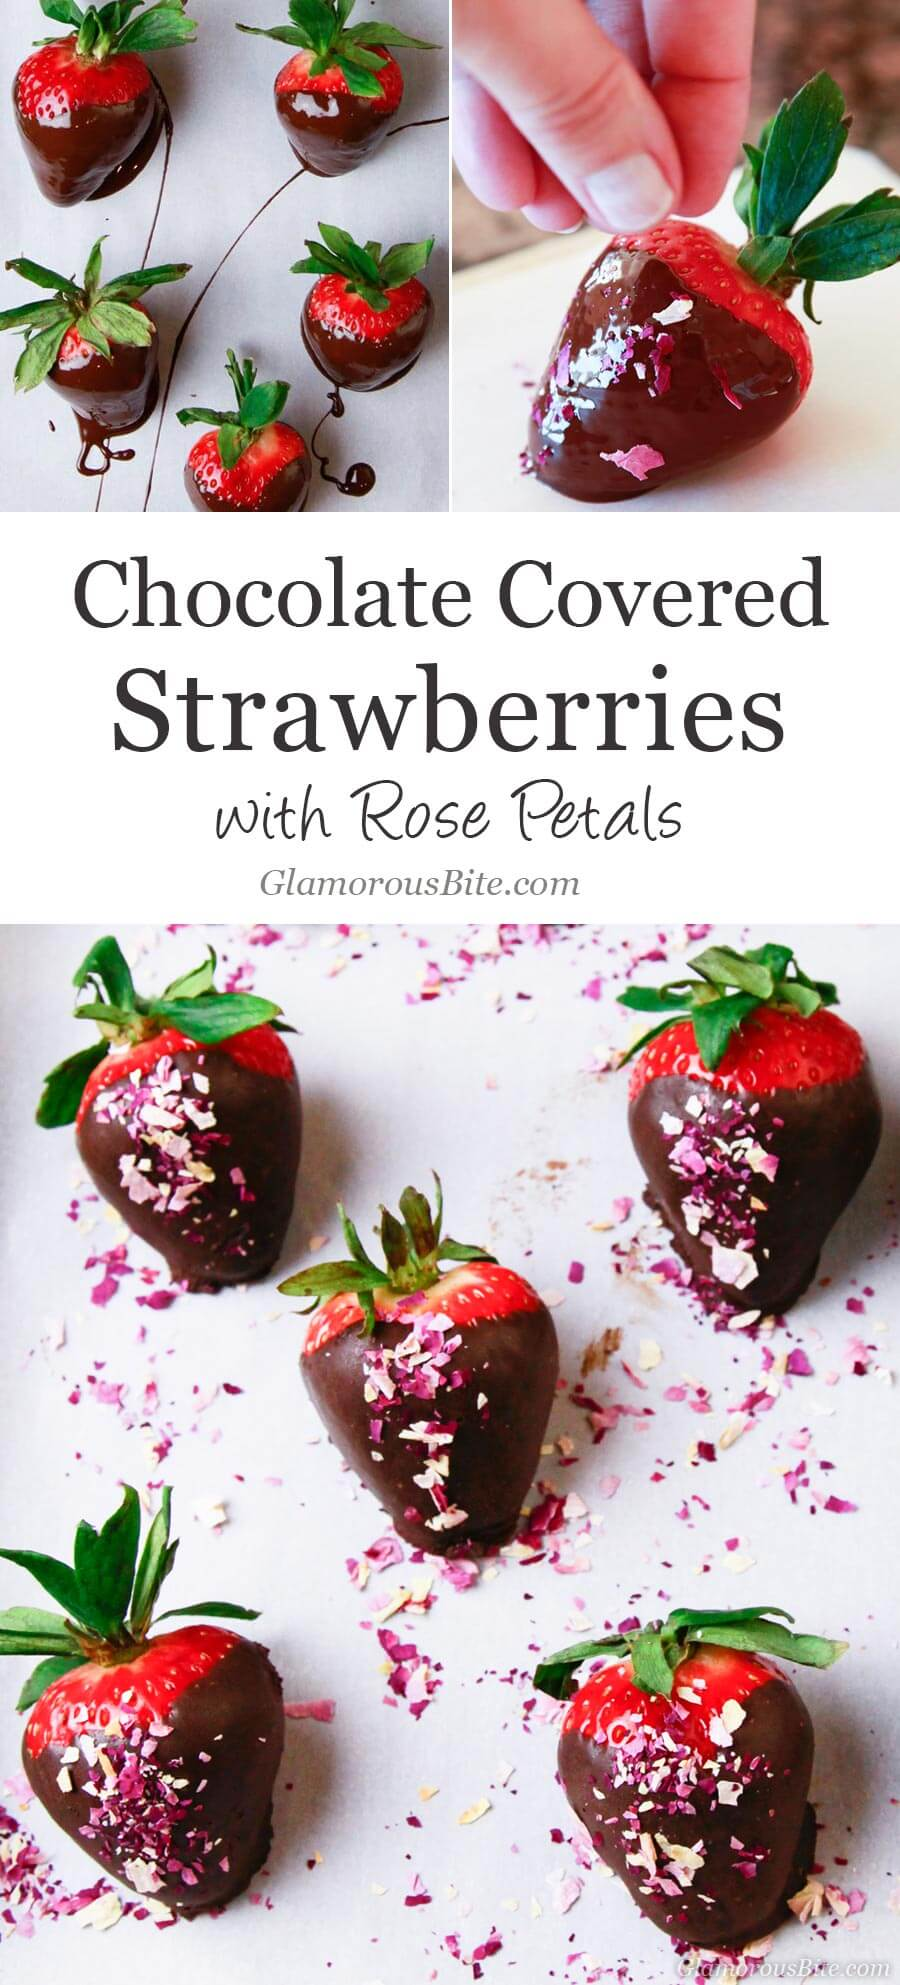 Chocolate Covered Strawberries decorate with Rose Petals from GlamorousBite.com